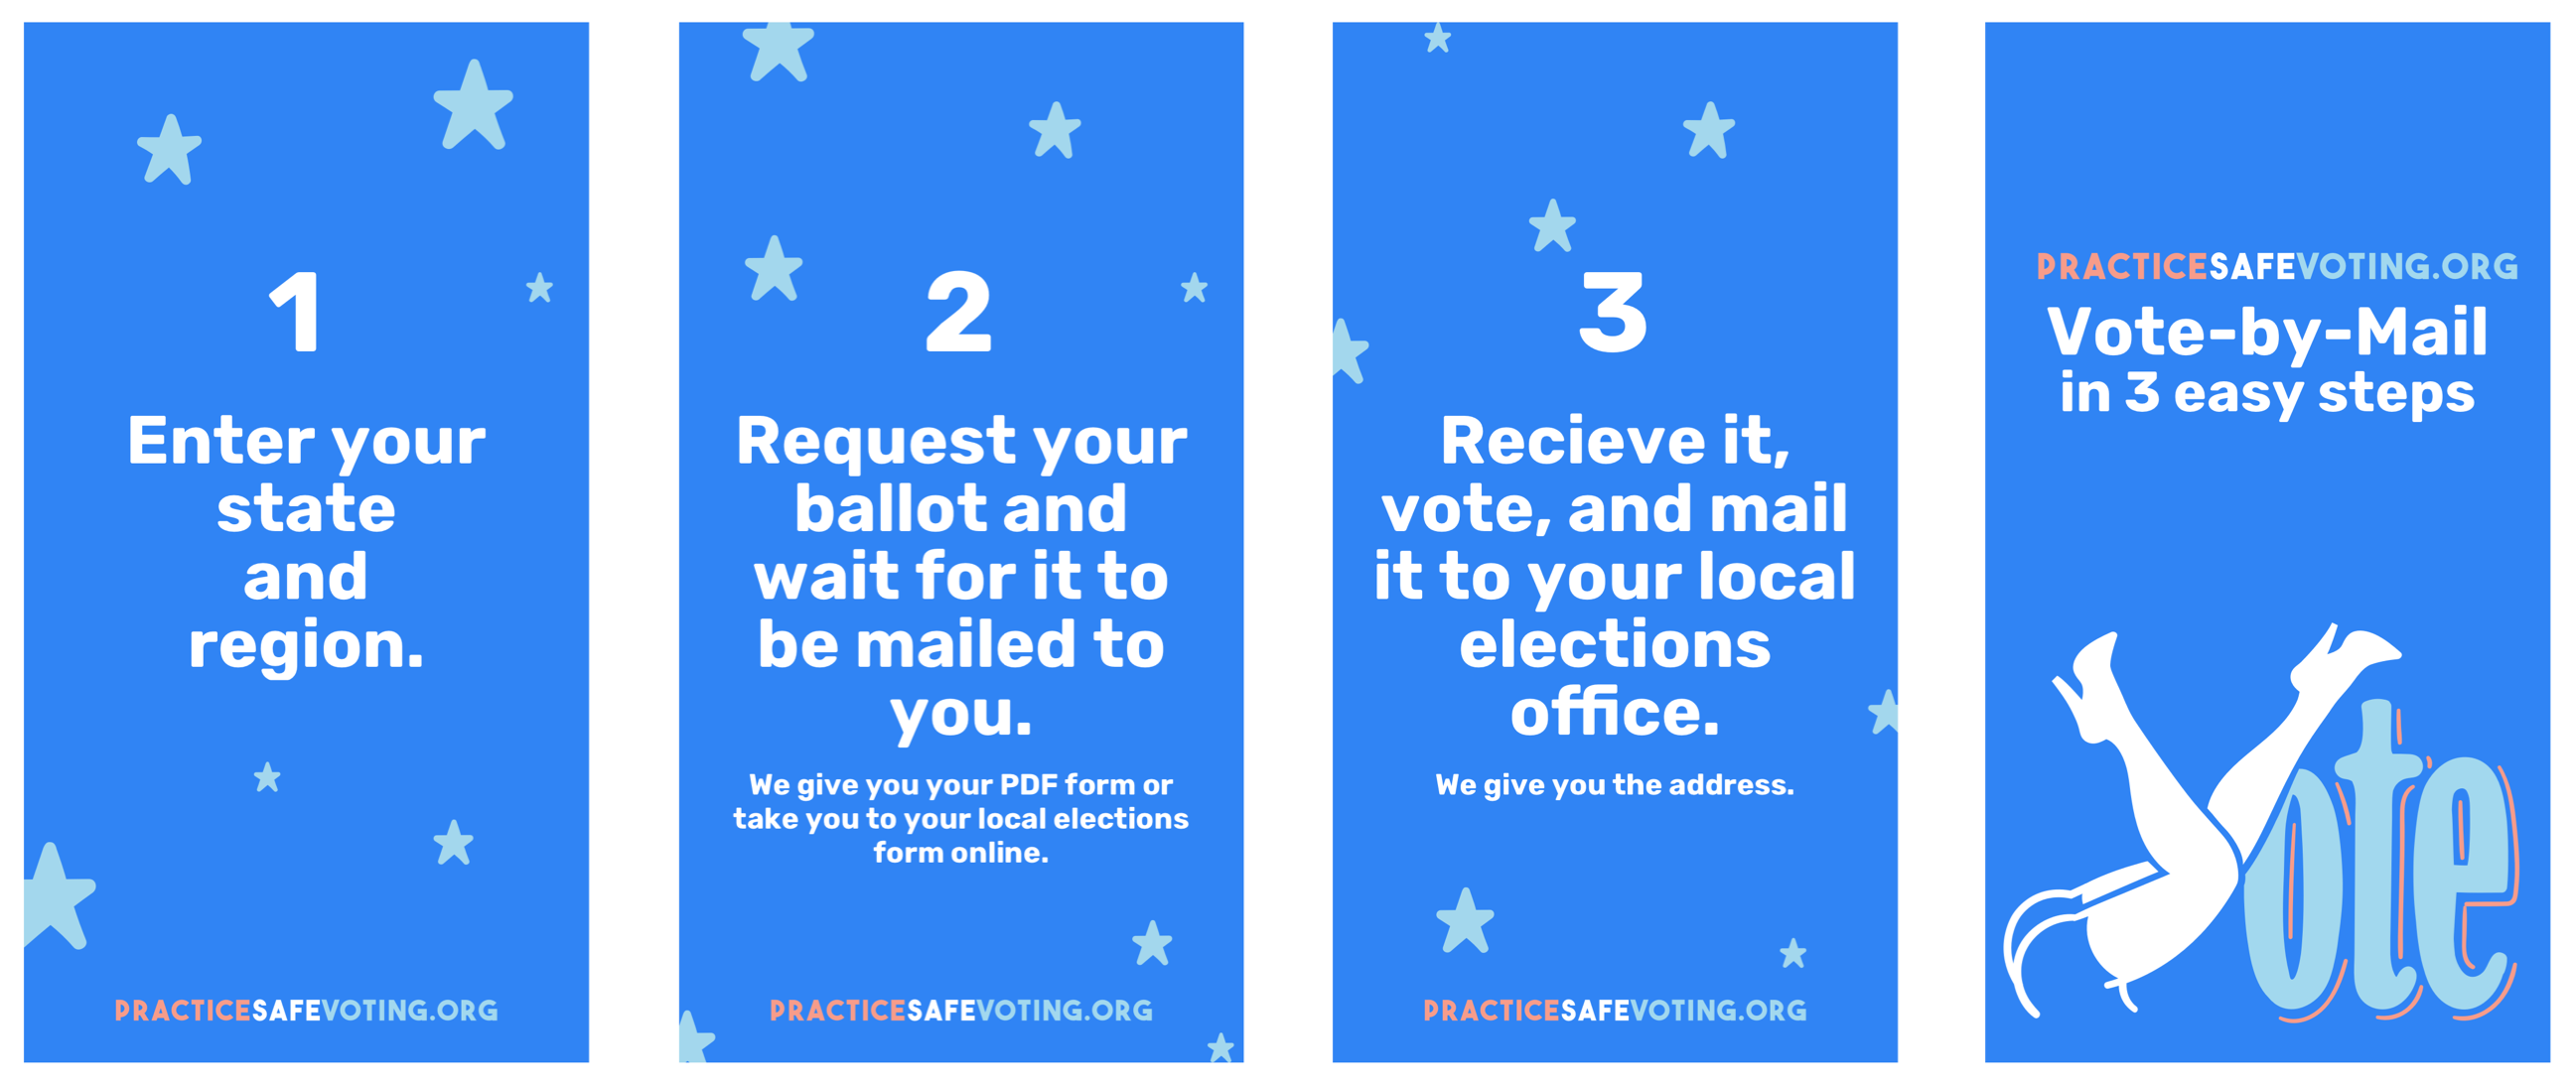 1. Enter your state and region. 2. Request your ballot and wait for it to be mailed to you. 3. Recieve it, vote, and mail it to your loca